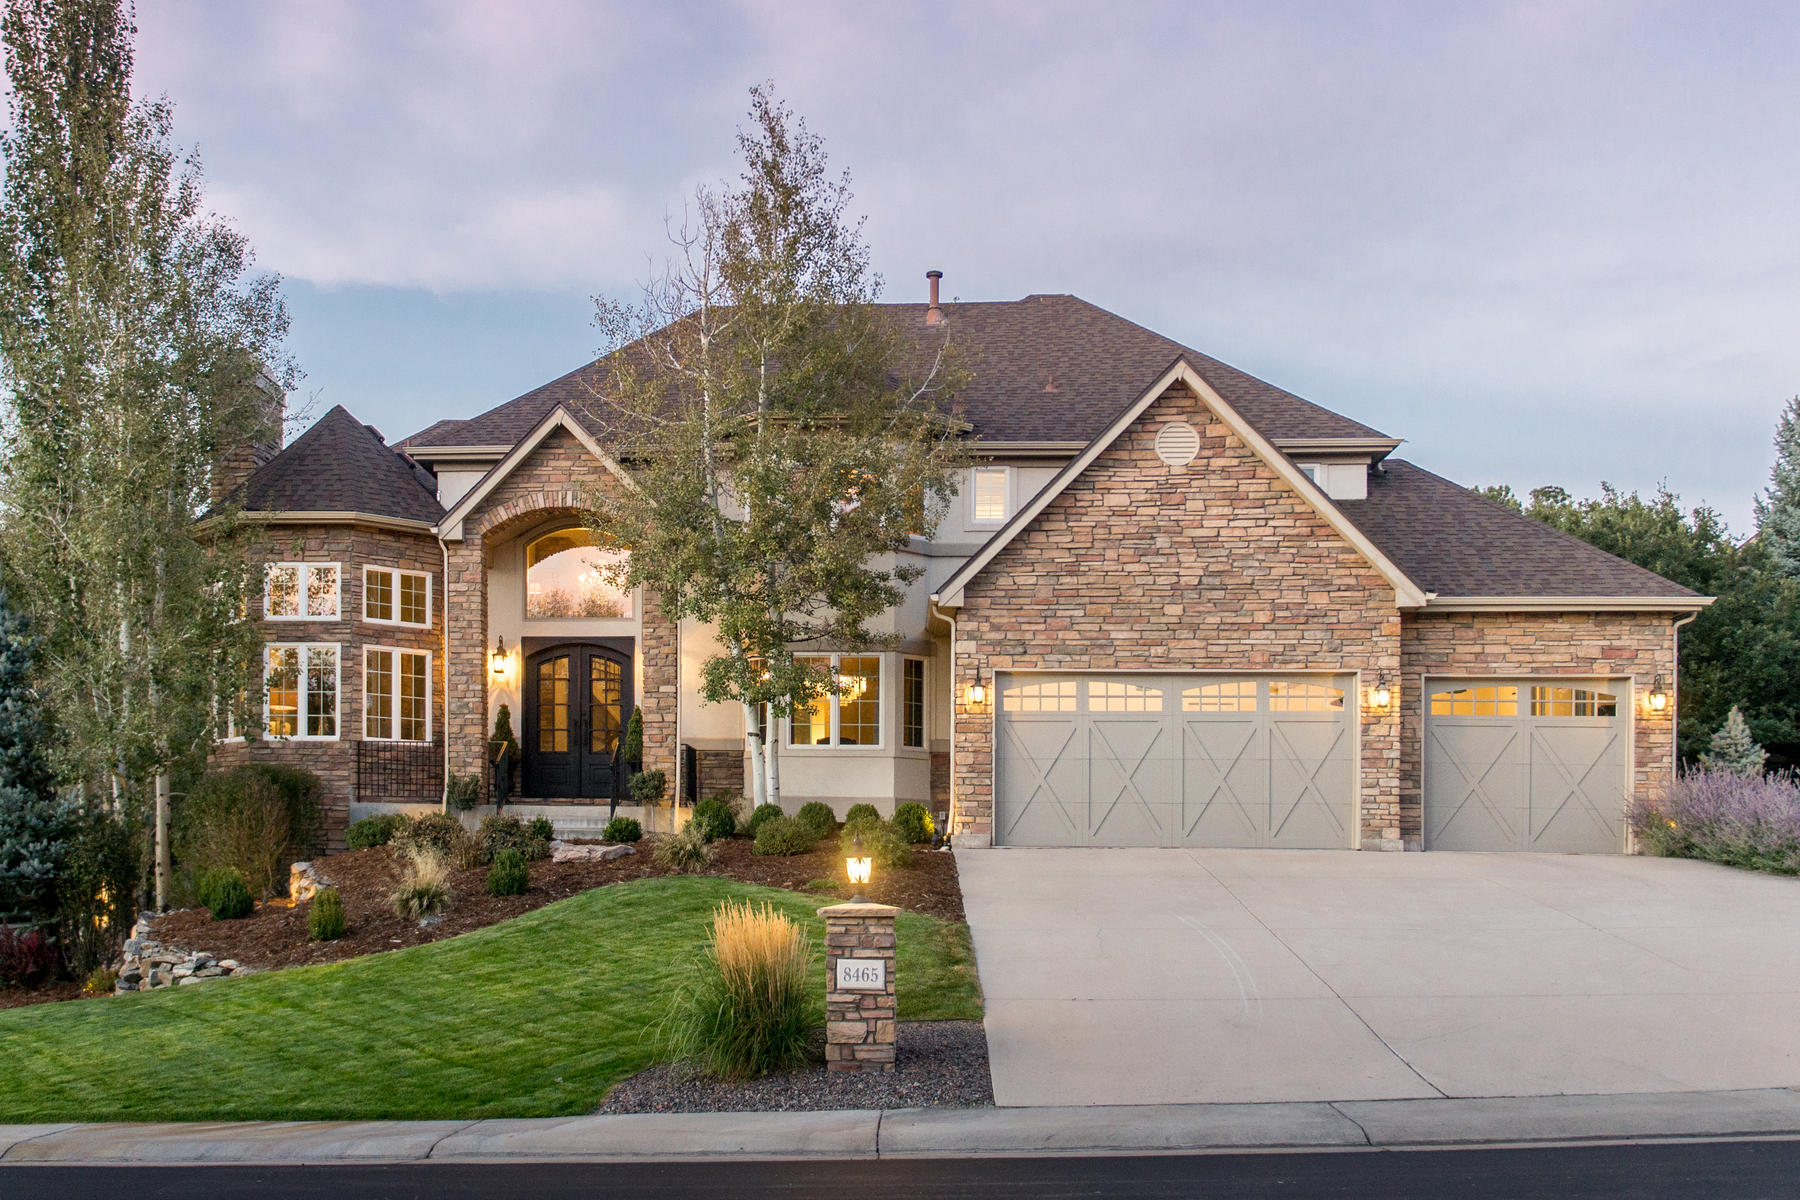 Property for Active at The Timbers 8465 Windhaven Dr Parker, Colorado 80134 United States